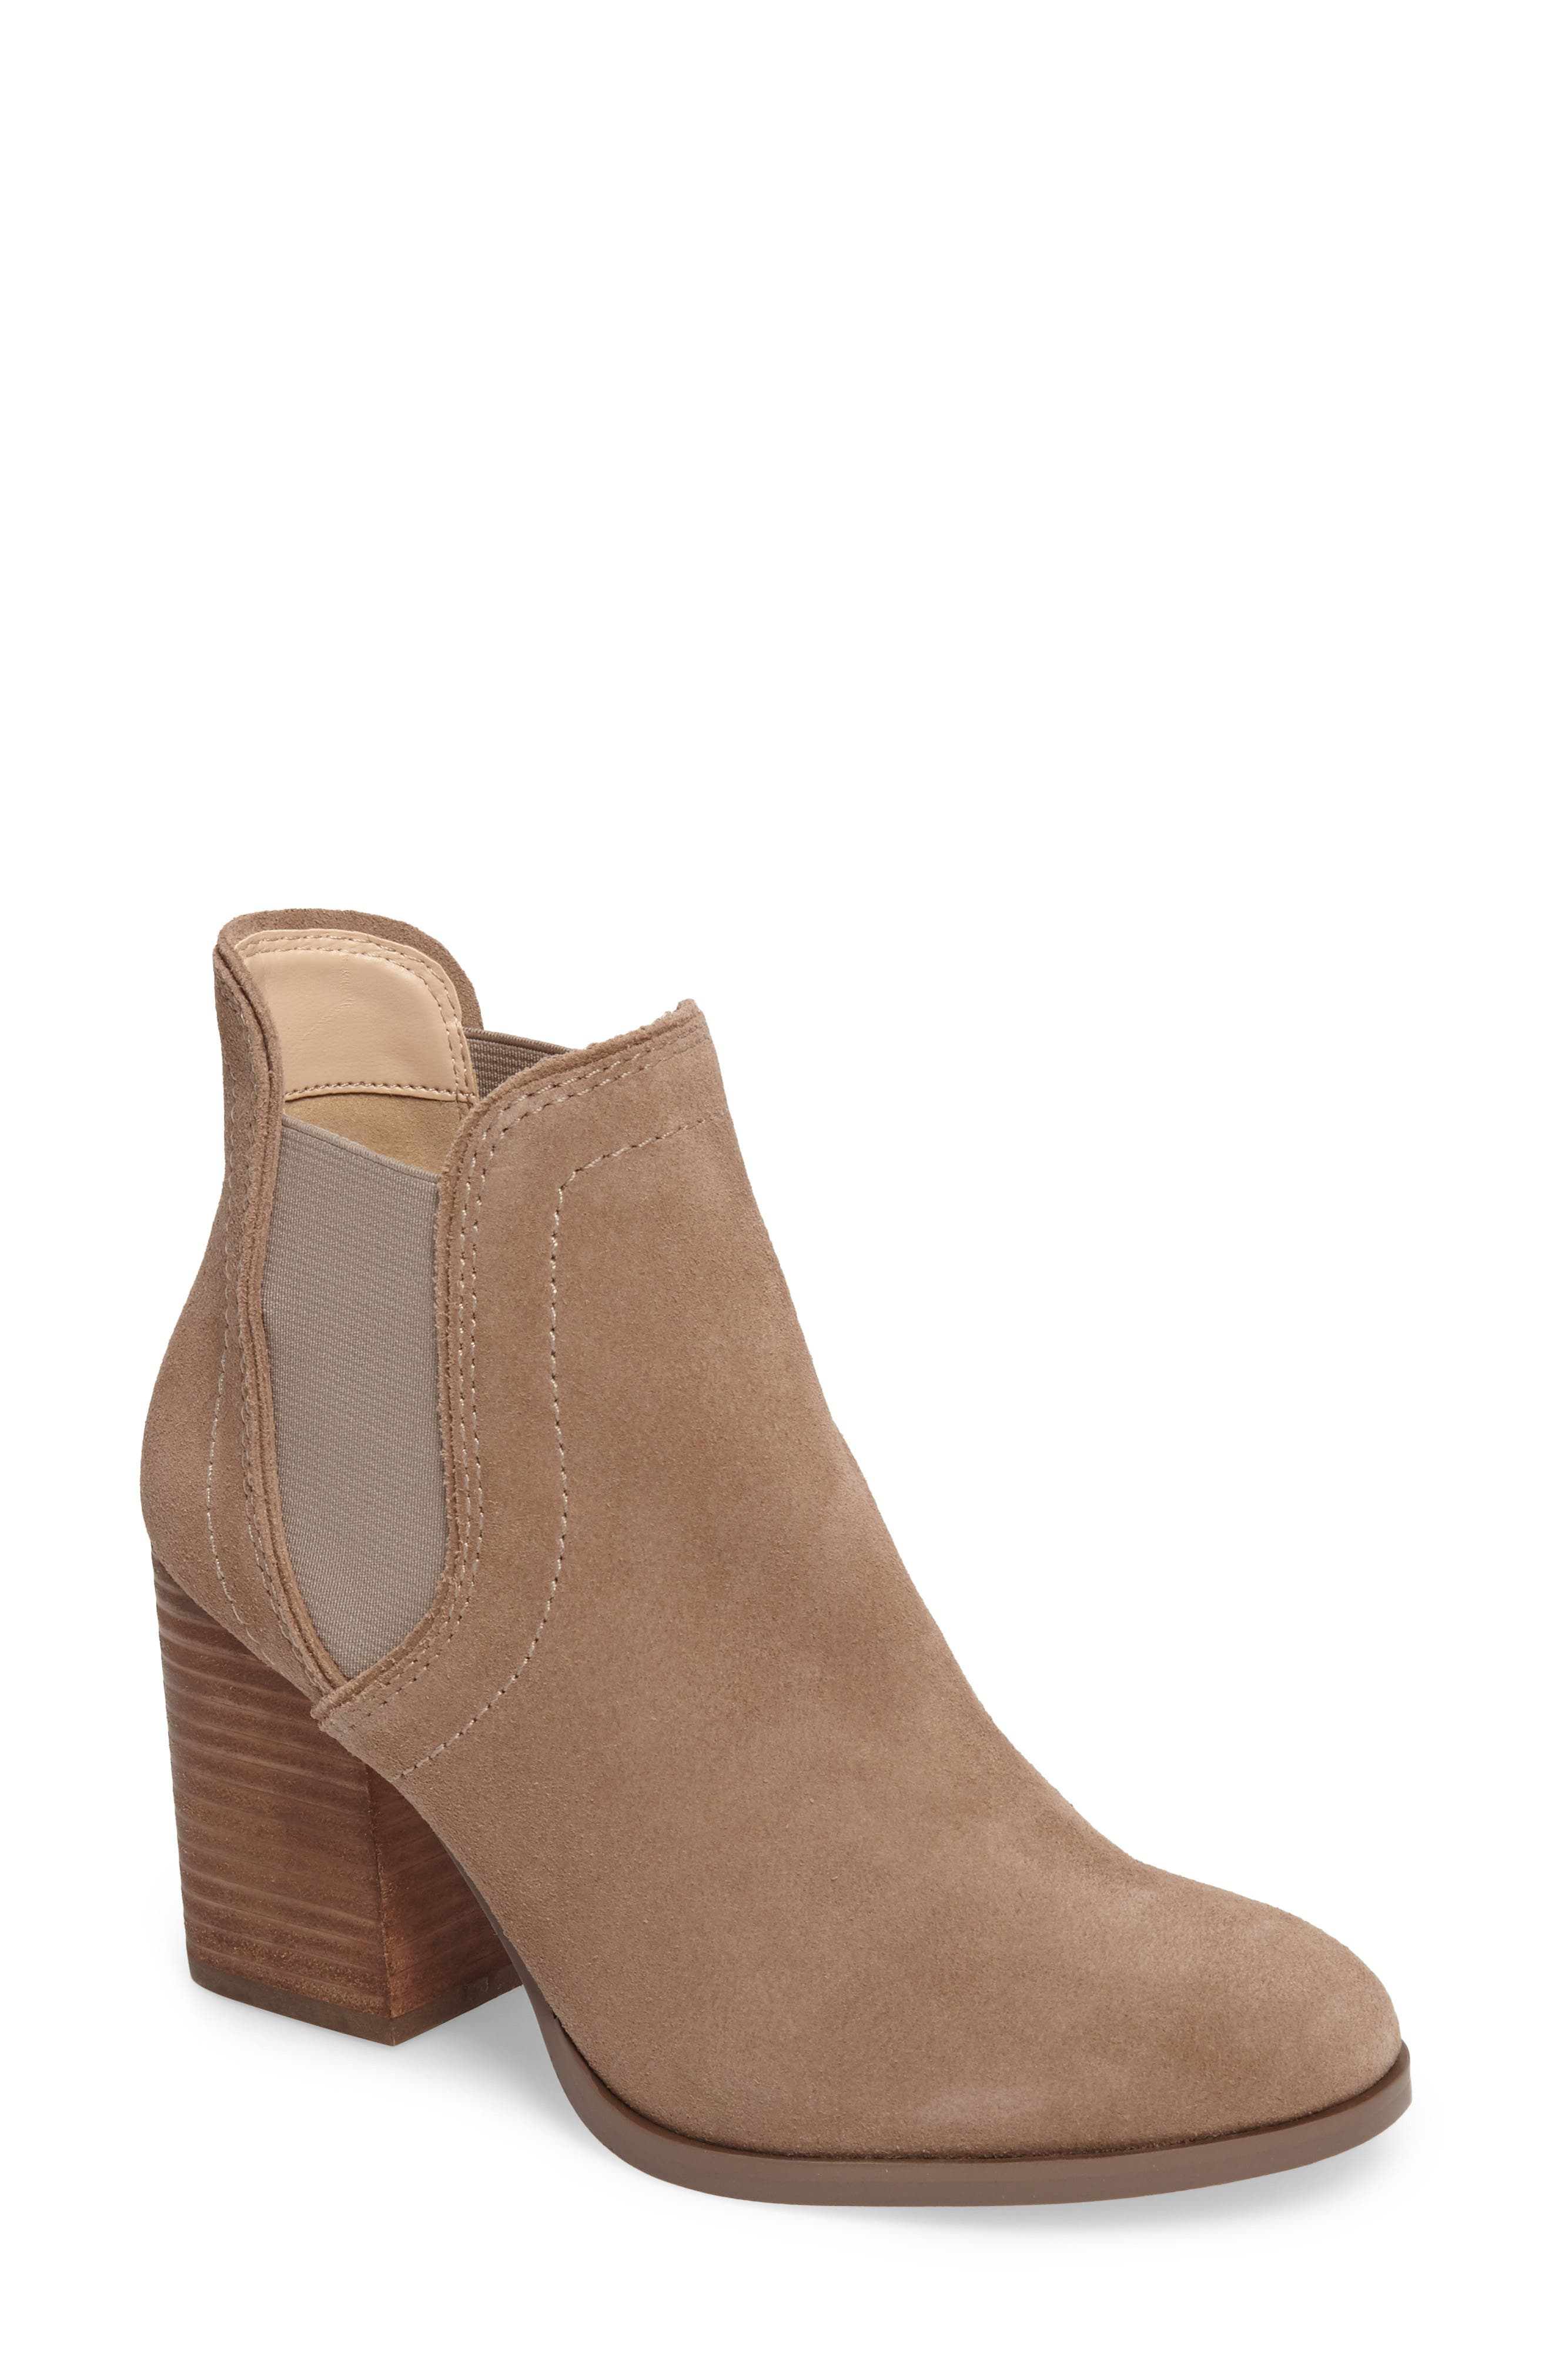 Carrillo Bootie,                             Main thumbnail 1, color,                             203